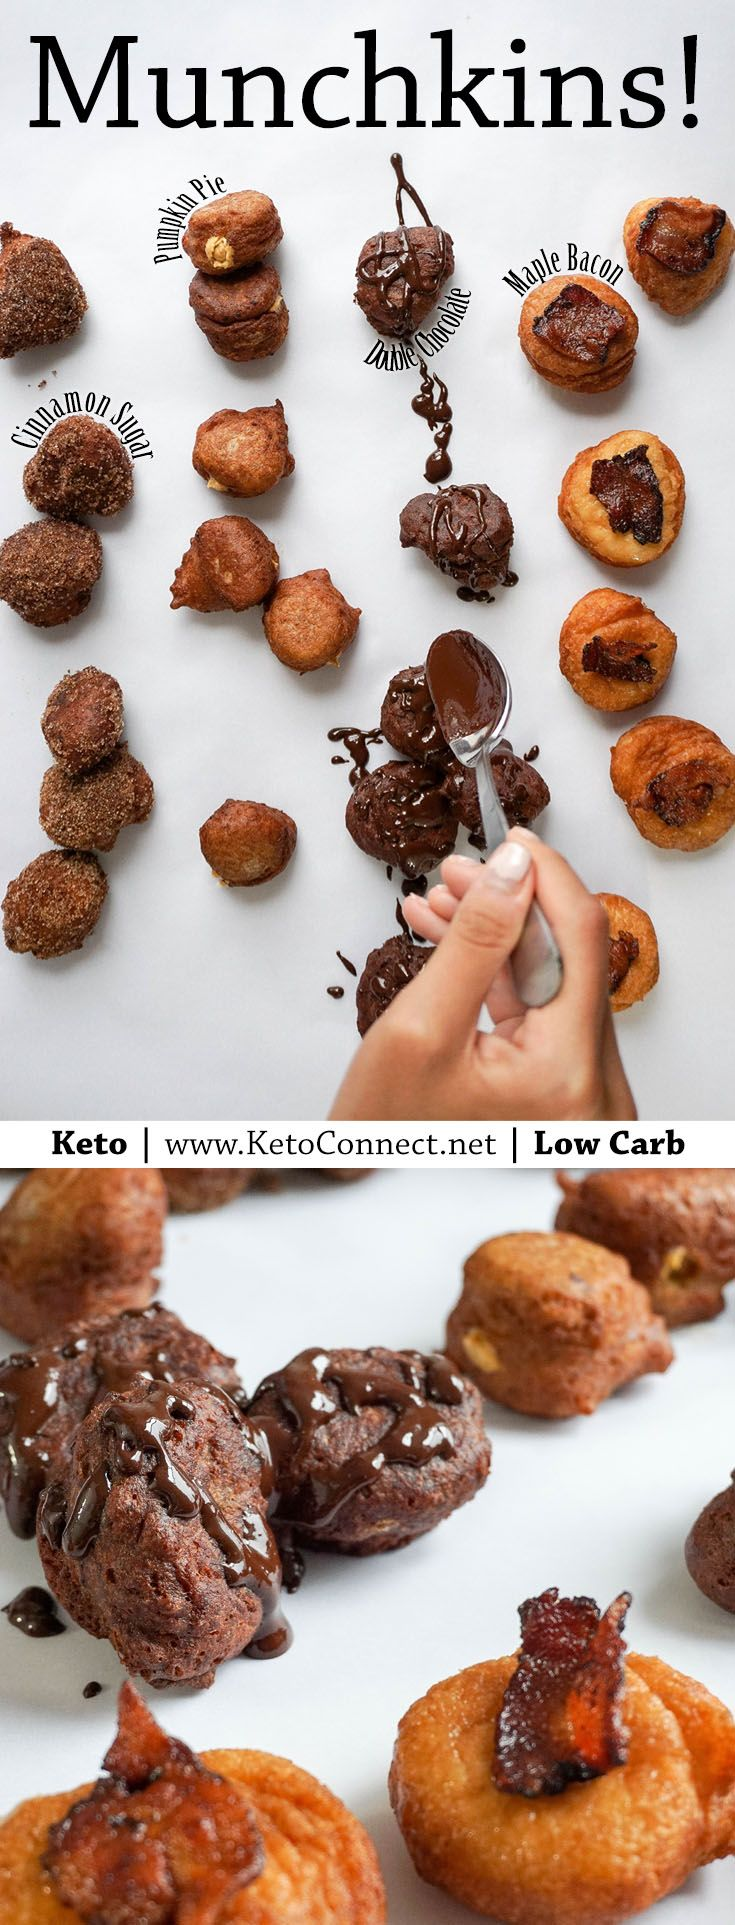 Keto Donuts are here, just in time for fall!  Before you ask...Yes we have Pumpkin Spice.